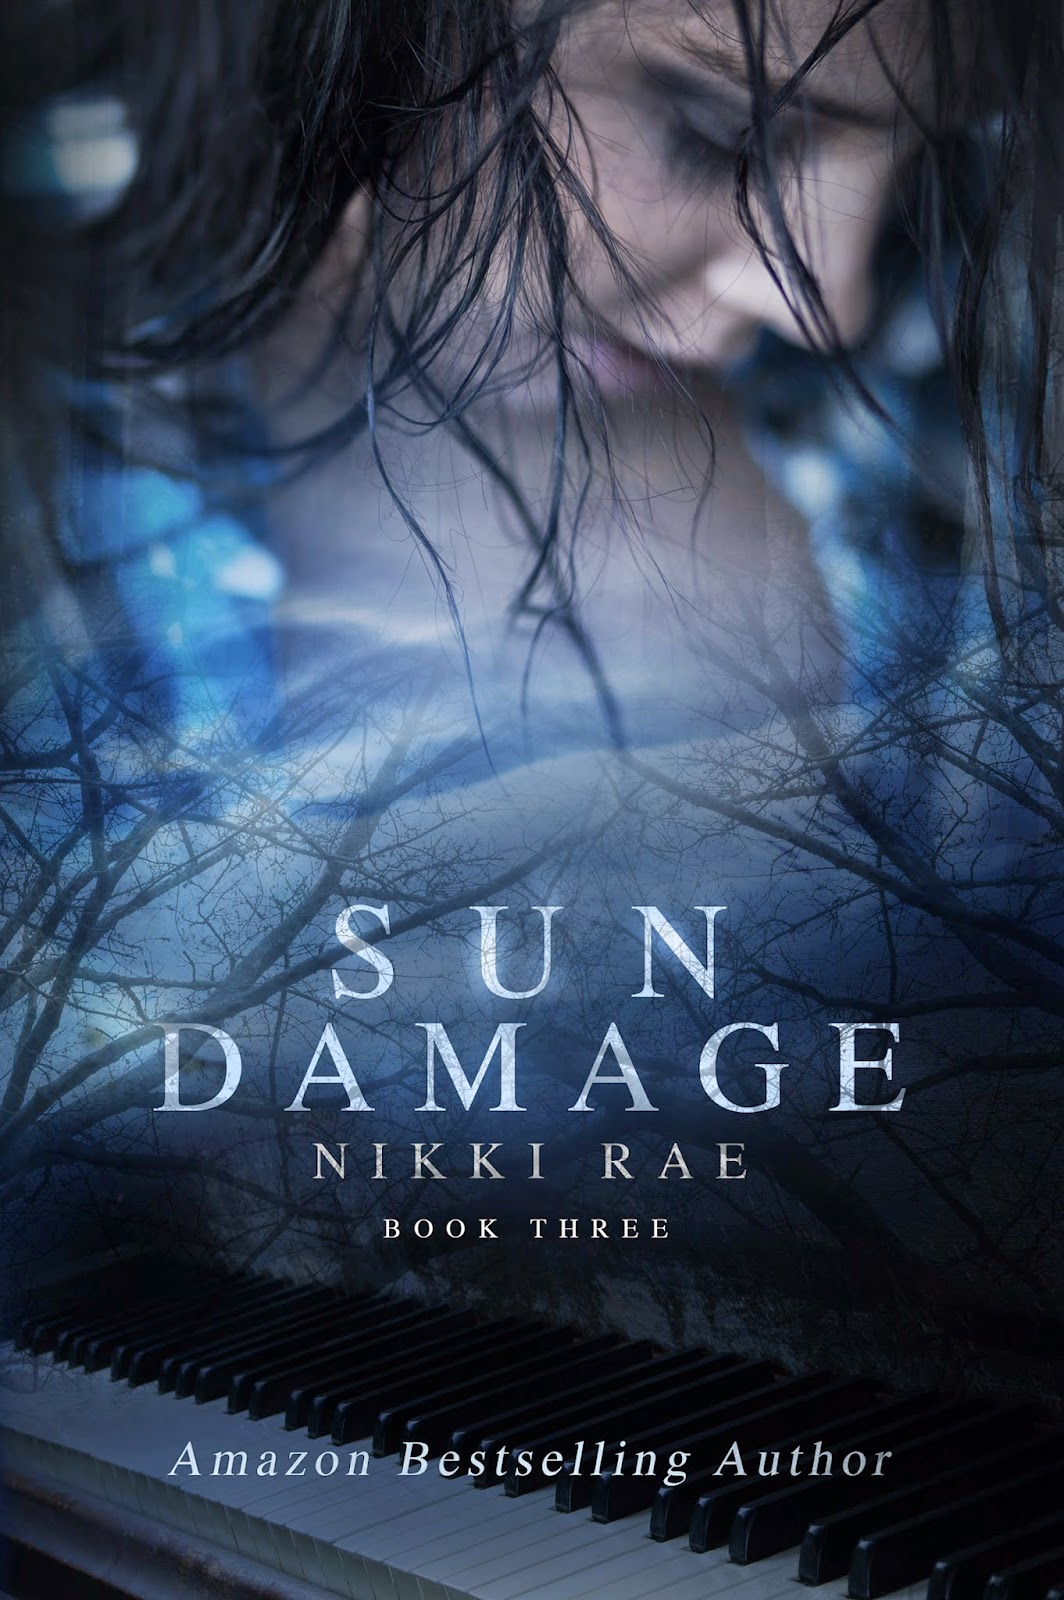 https://www.goodreads.com/book/show/18275070-sun-damage